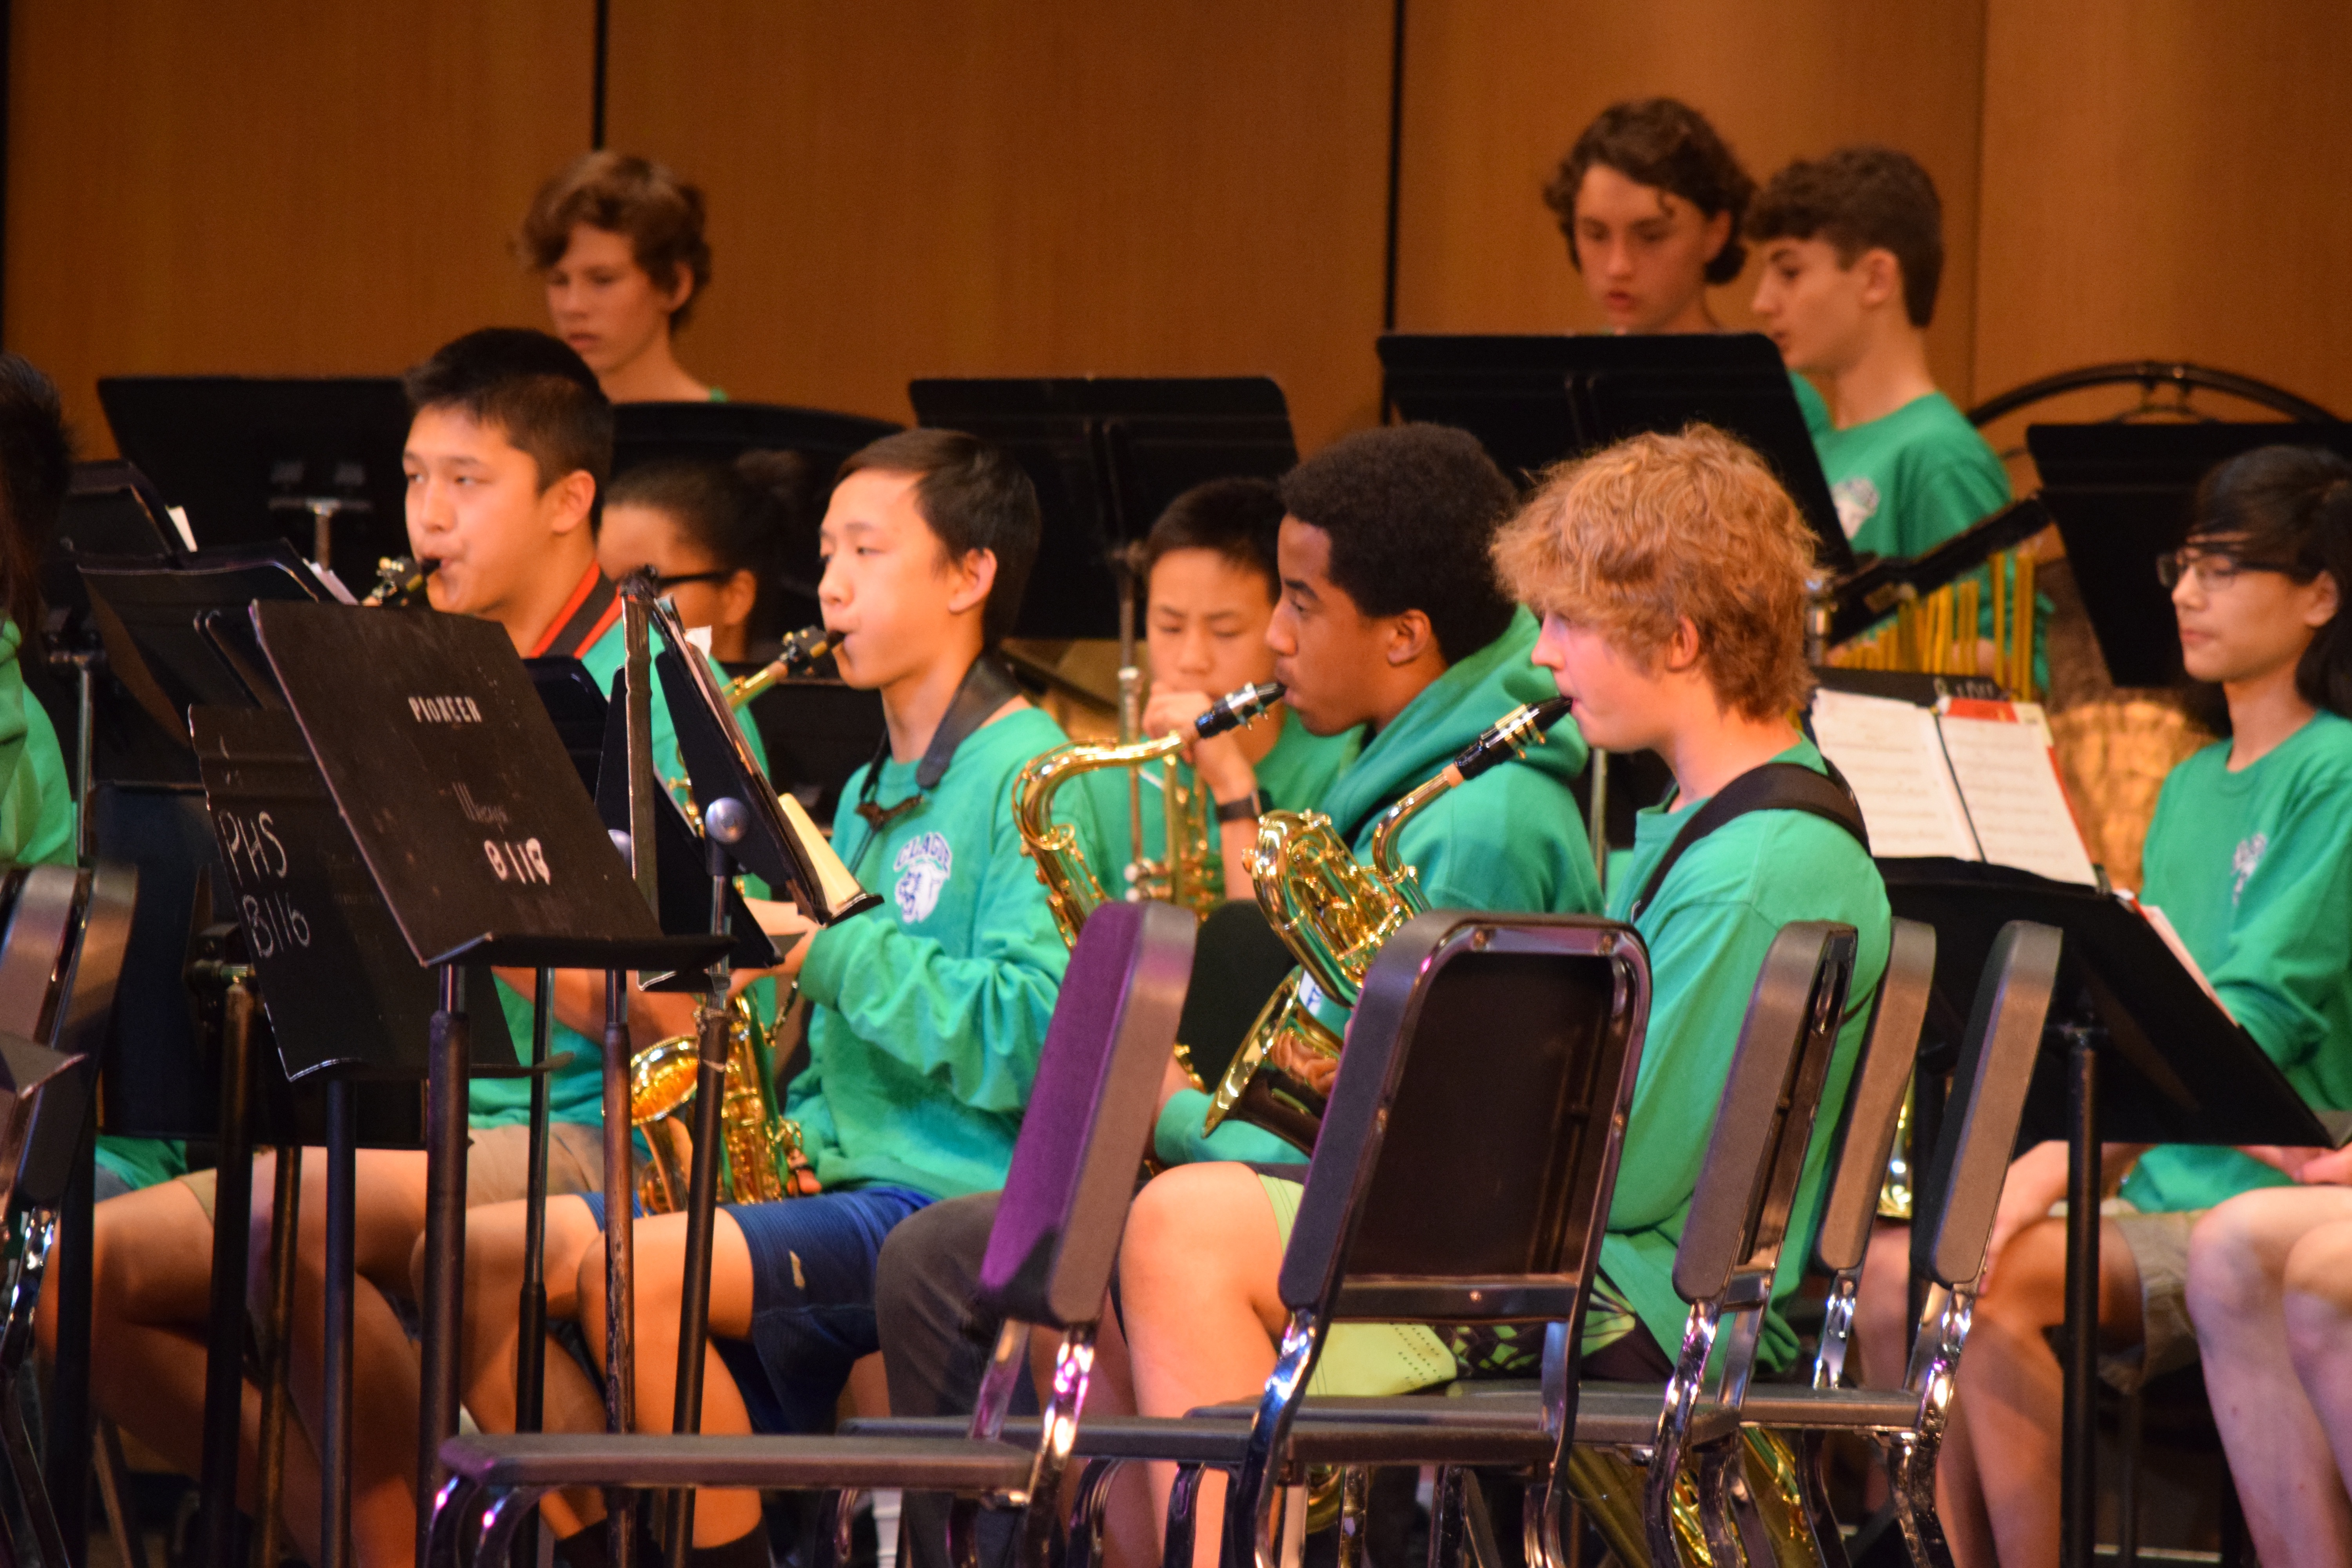 Members of Clague's band perform at the 2018 Picnic Pops inside the auditorium at Pioneer High School.